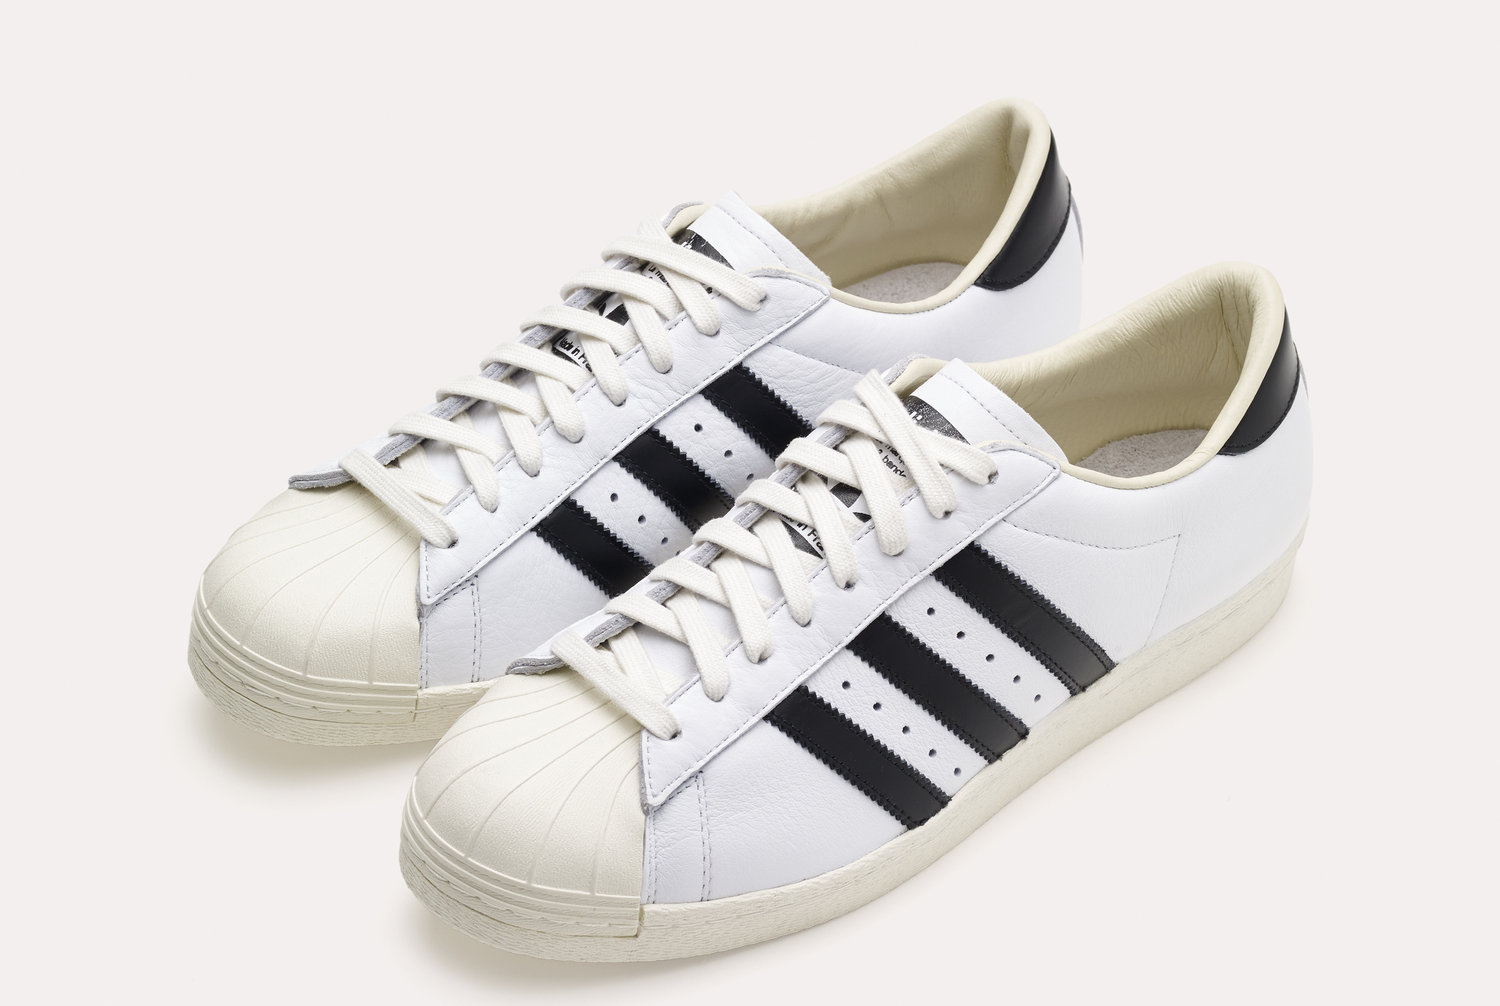 OTH adidas Superstar Made in France